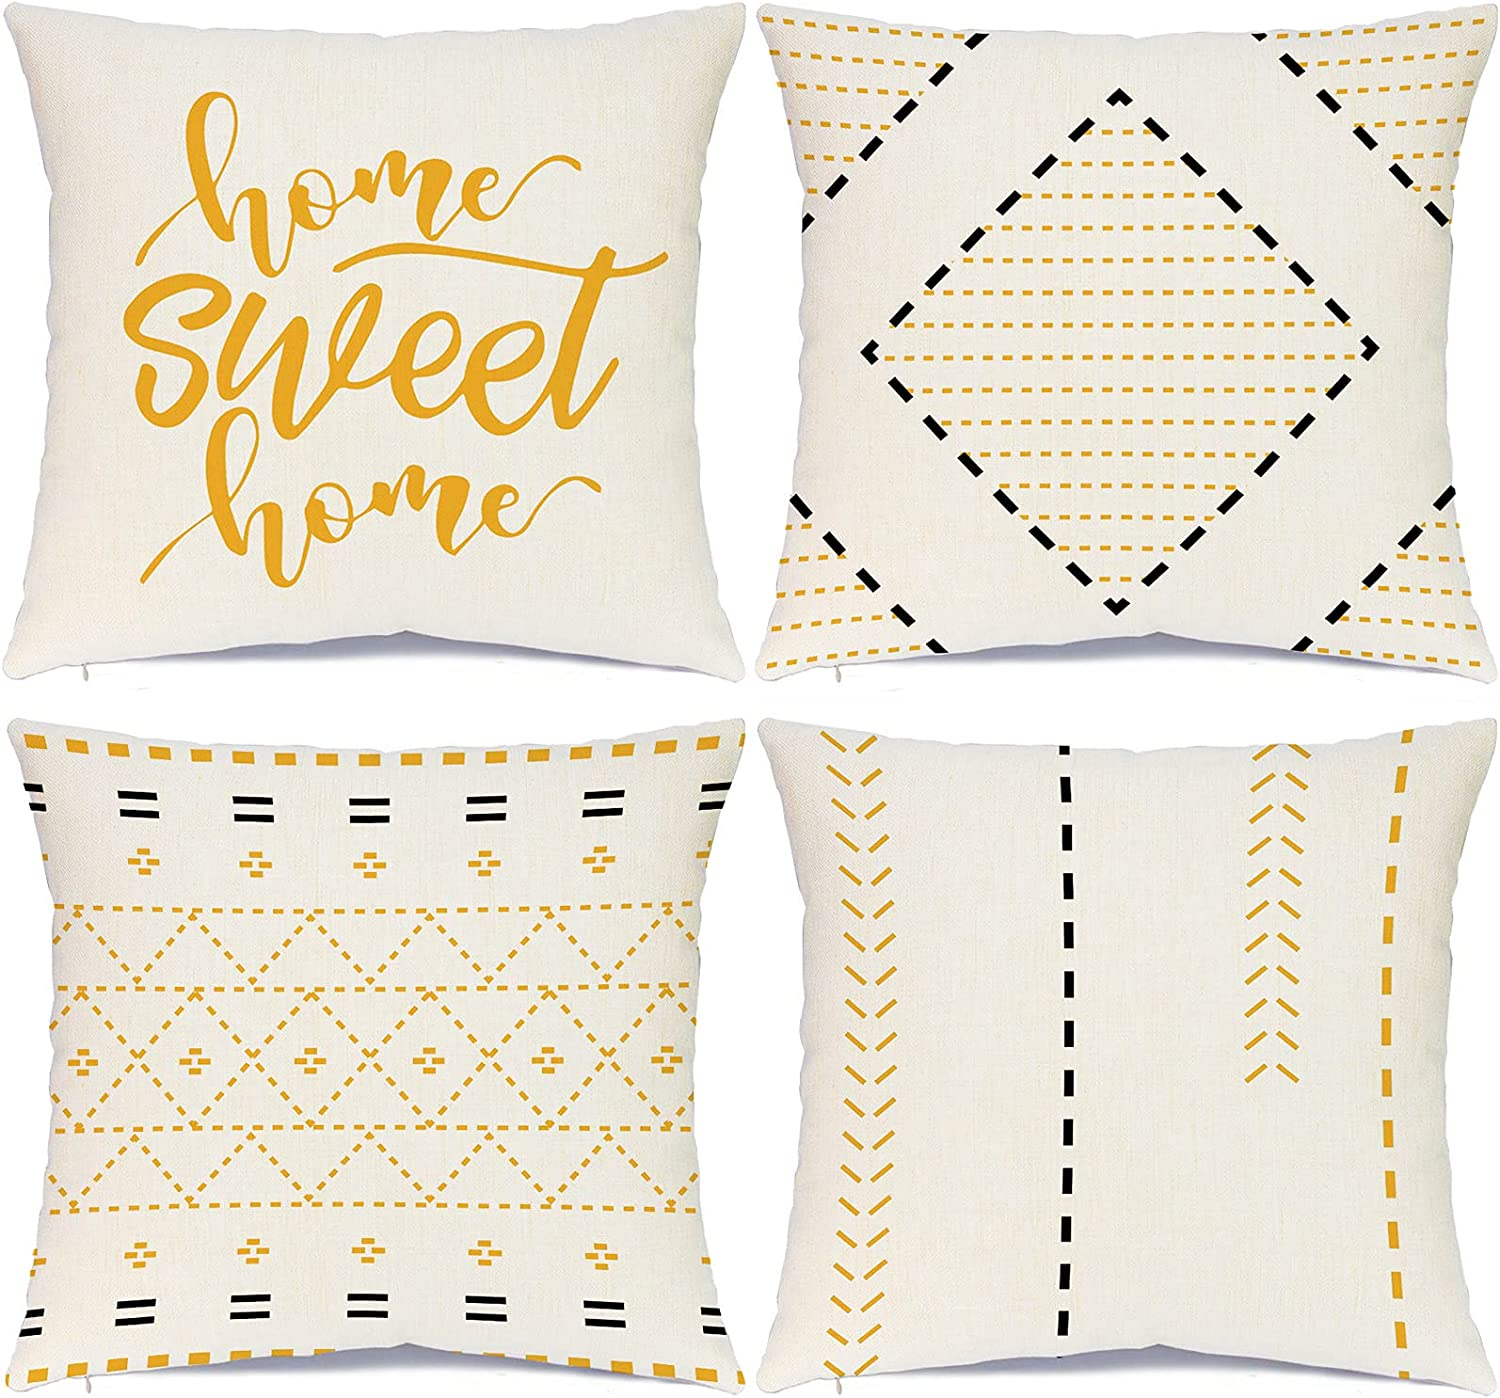 Hlonon Decorative Boho Throw Pillow Covers for Couch Set of 4 Modern Style Stripes Geometric Square Cushion Covers for Bed Sofa Living Room Home Decoration (Black + Yellow, 18x18 Inch)